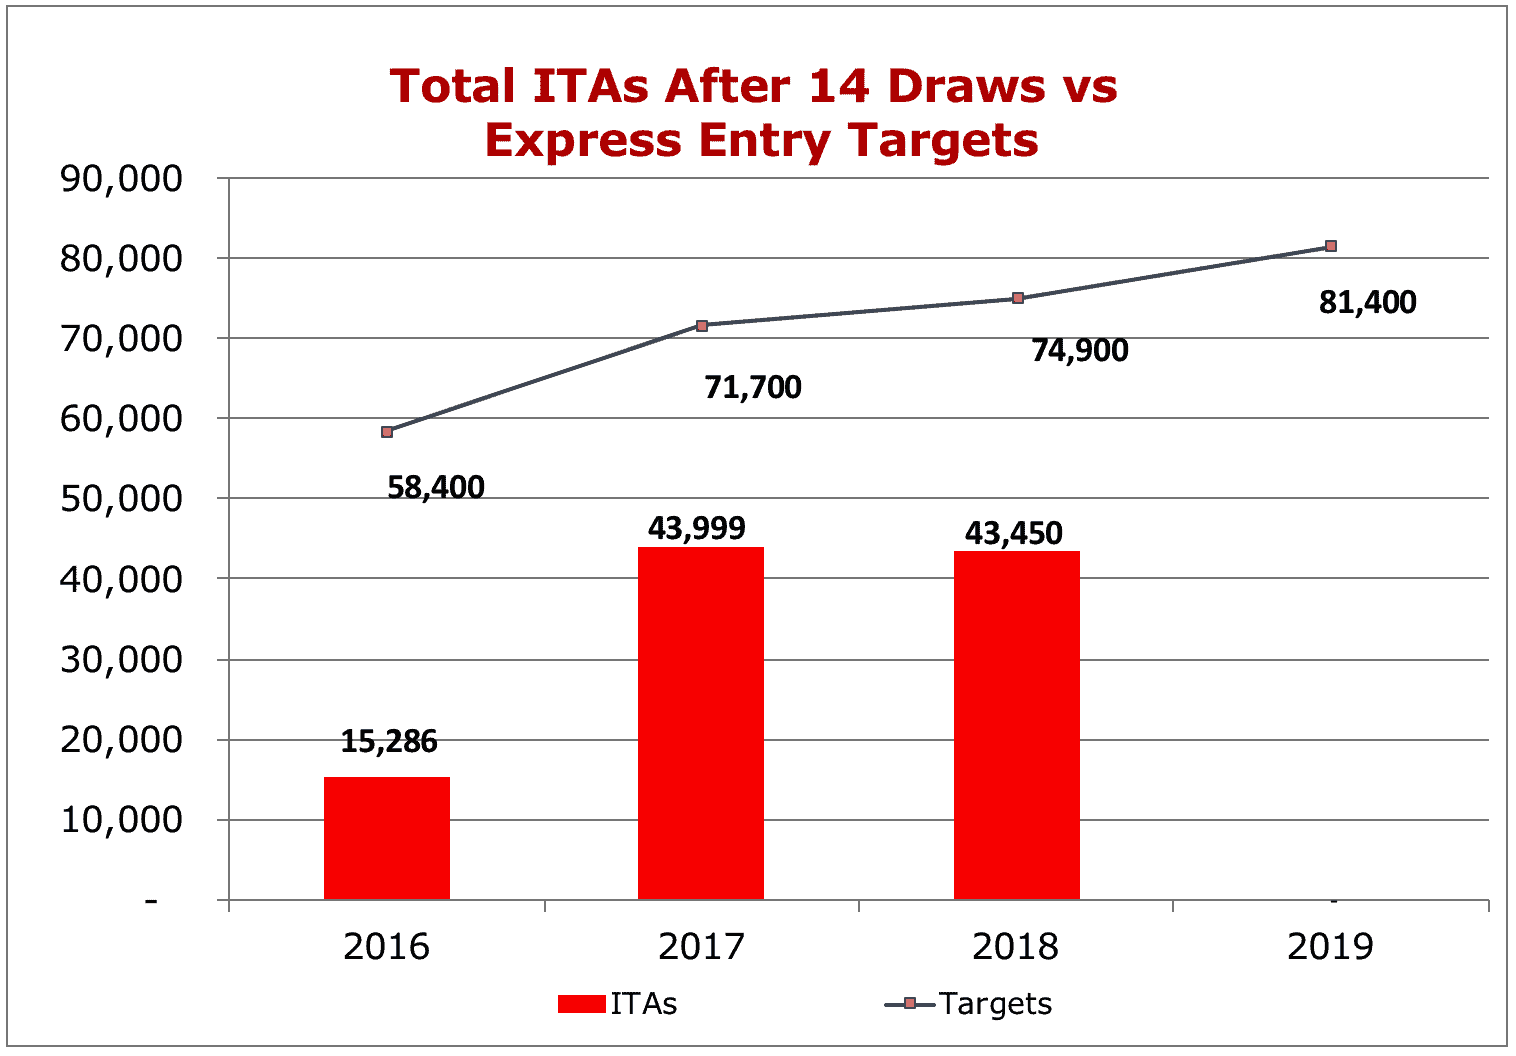 Total ITAs After 14 Draws vs Express Entry Targets